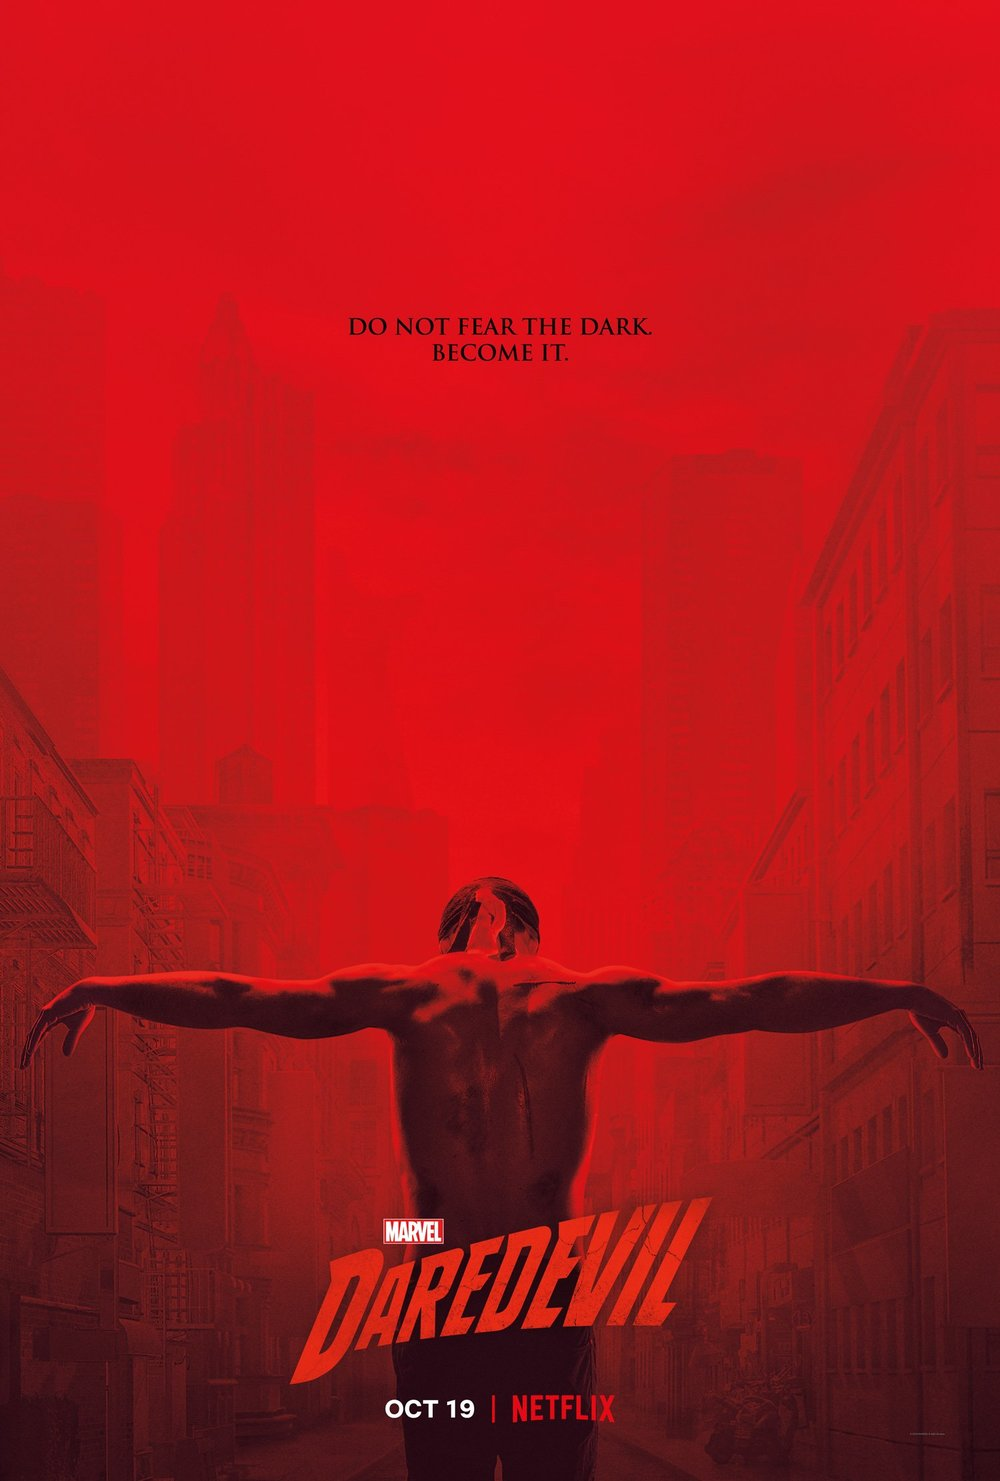 new-poster-for-daredevil-season-3-includes-avengers-tower3